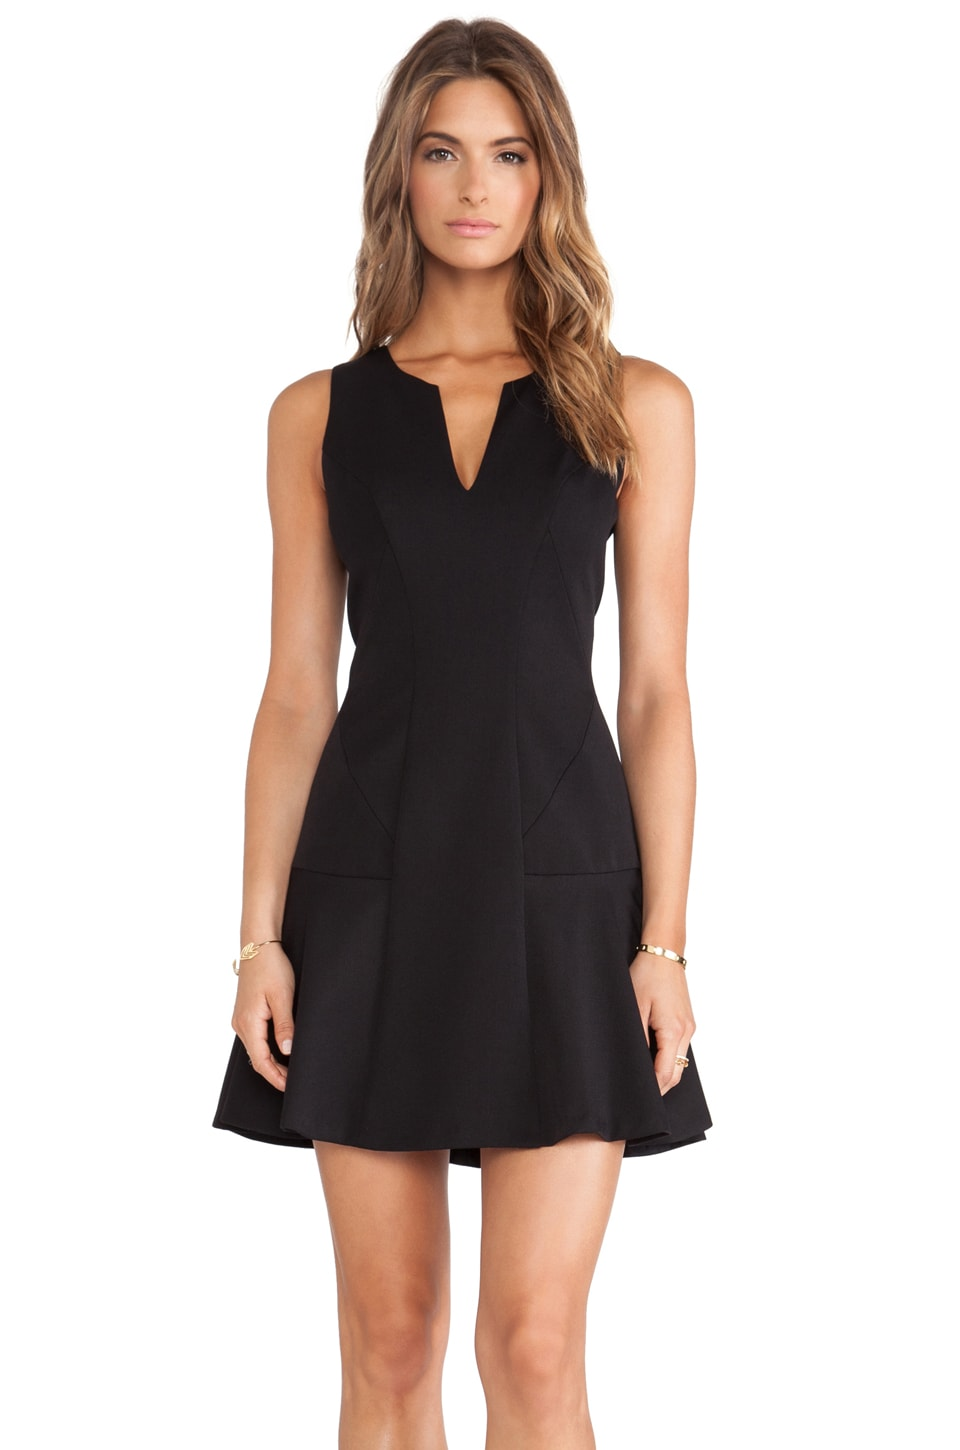 Black Halo x REVOLVE Nova Mini Dress in Black